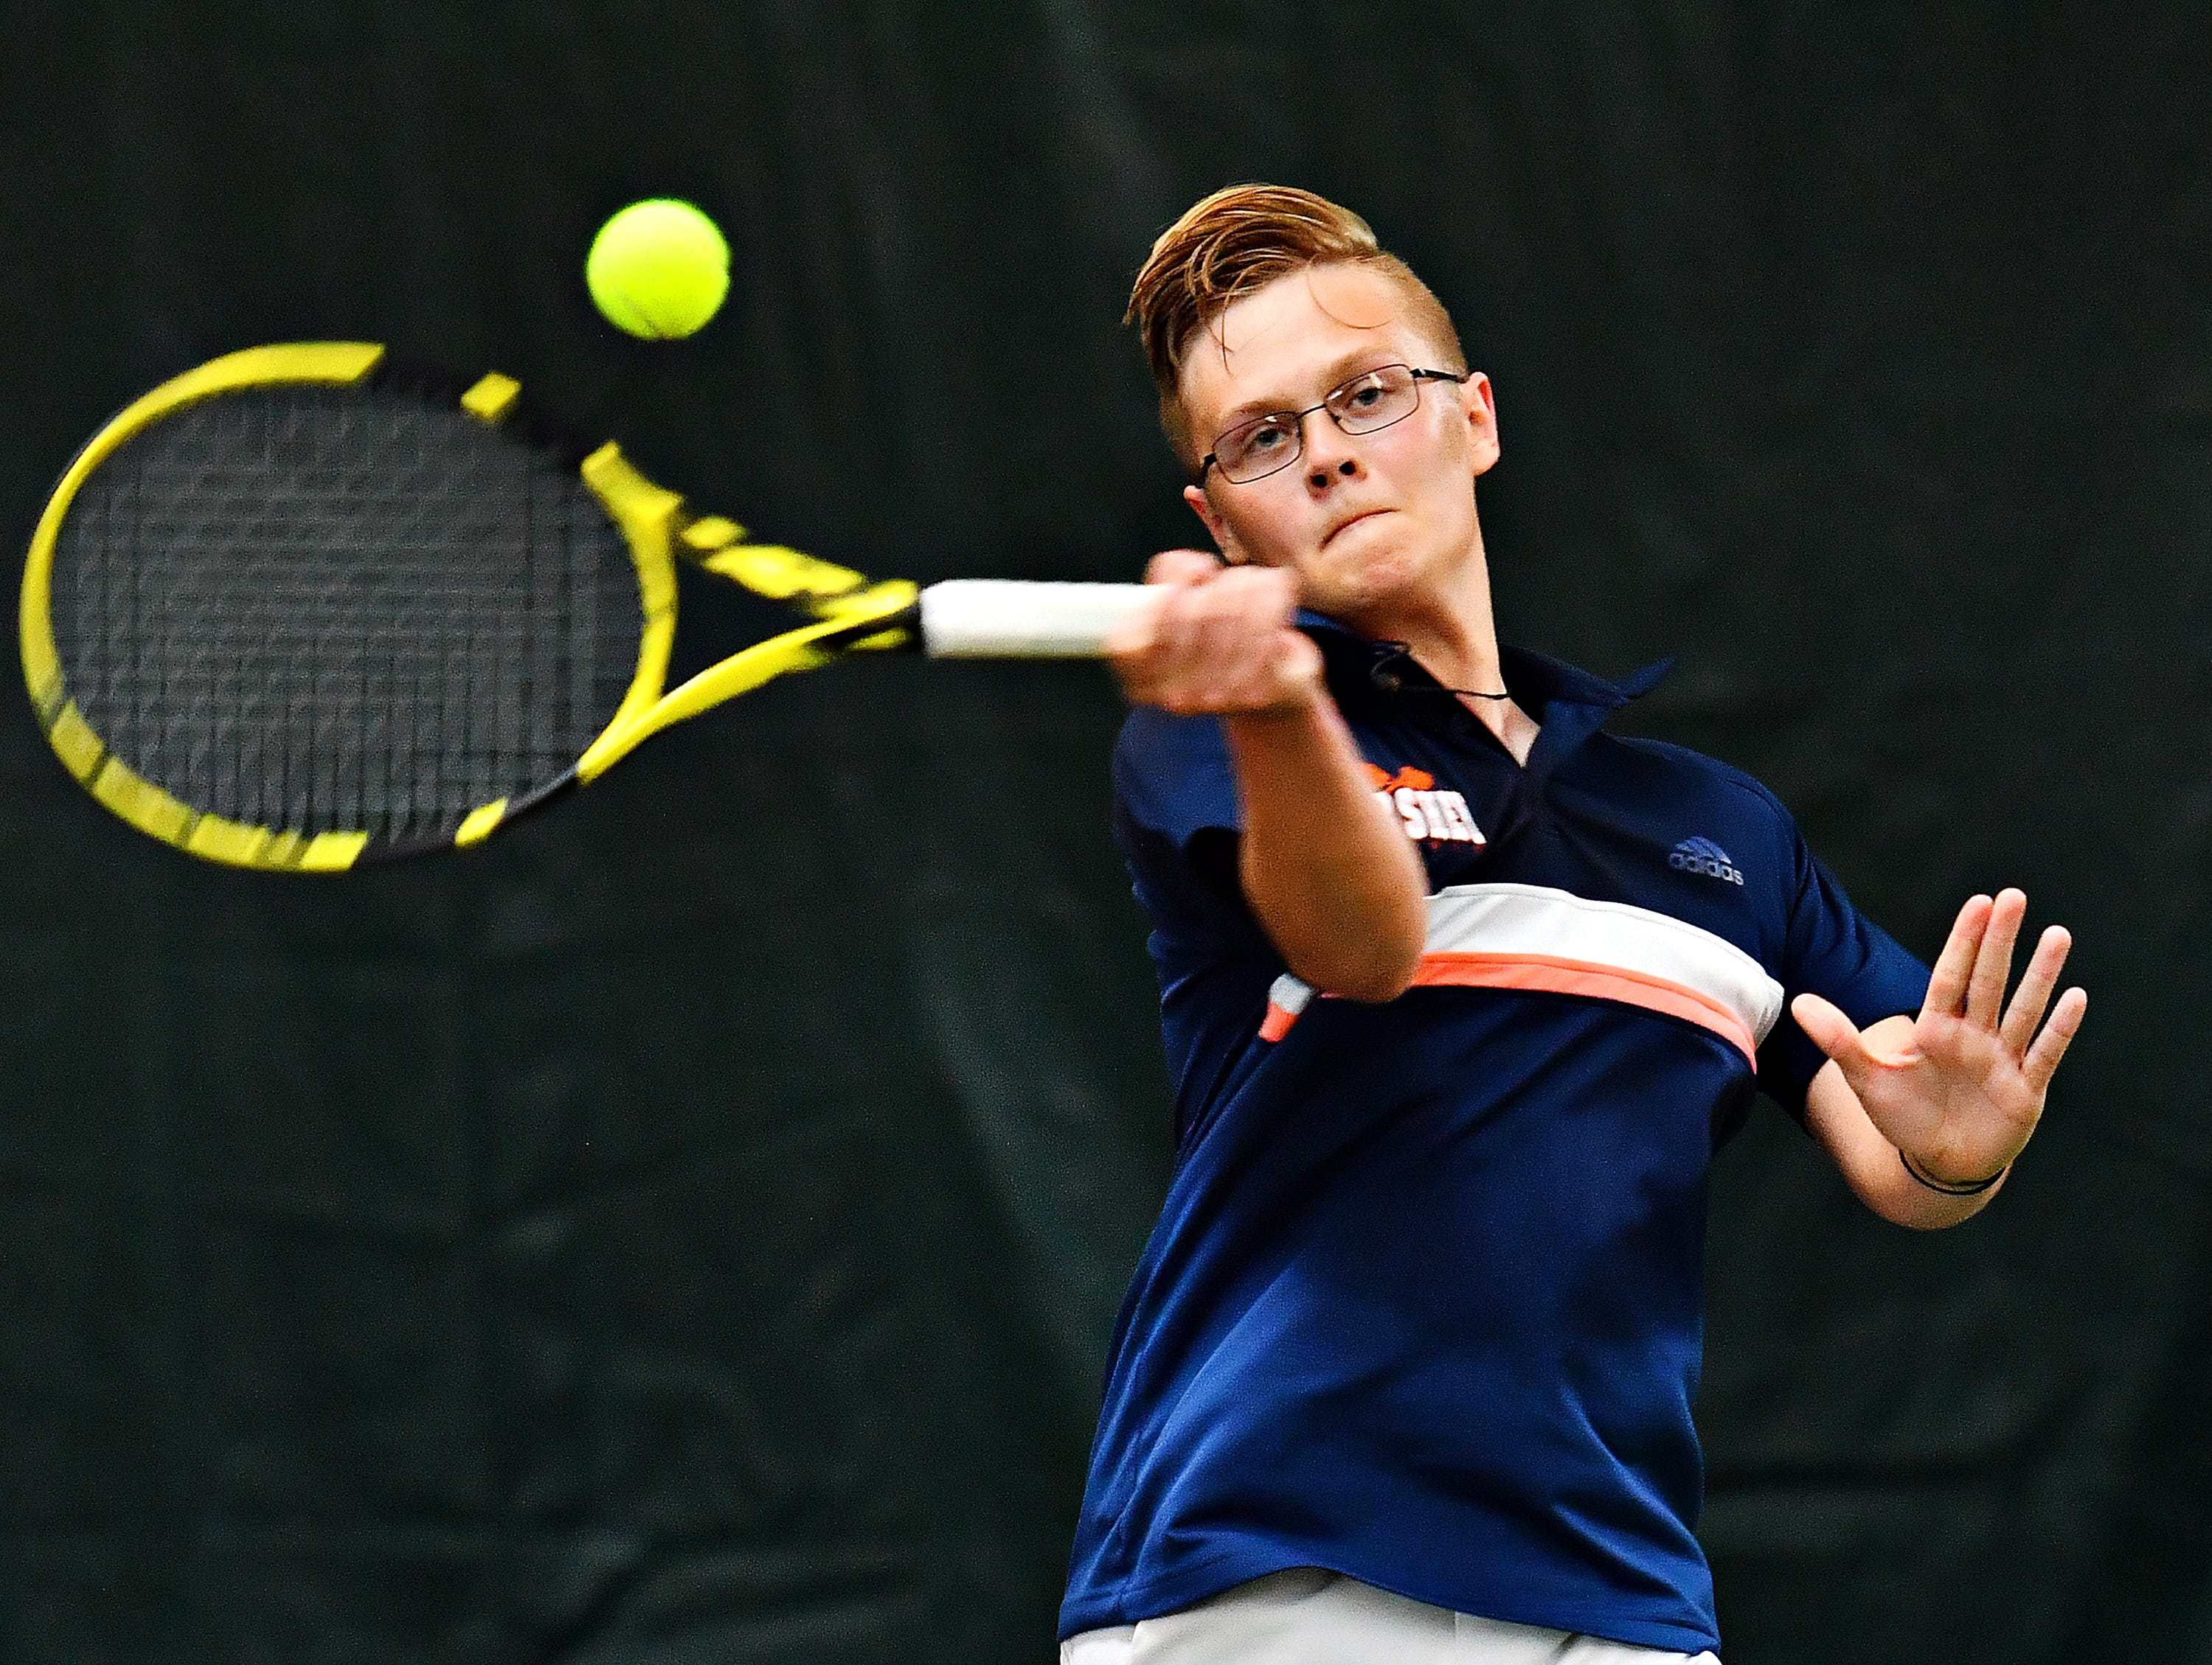 Hershey's Andrew Schreck returns the ball to Dallastown during District III, Class 3-A boys' tennis team championship doubles action at Hershey Raquet Club in Hershey, Thursday, May 9, 2019. Dallastown would win the match, but Hershey would secure the title. Dawn J. Sagert photo